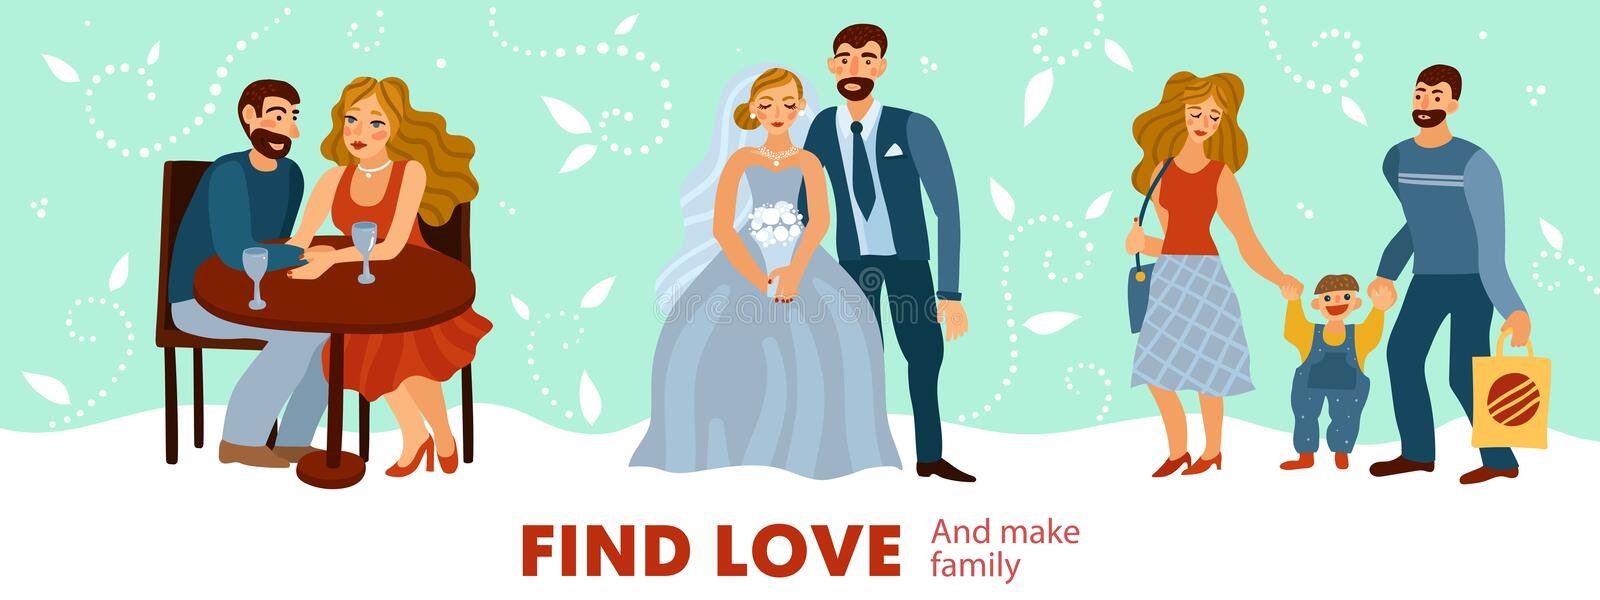 Developing Love Relations Illustration. Developing love relations from romantic dating to making of family with child on pastel background vector illustration stock illustration